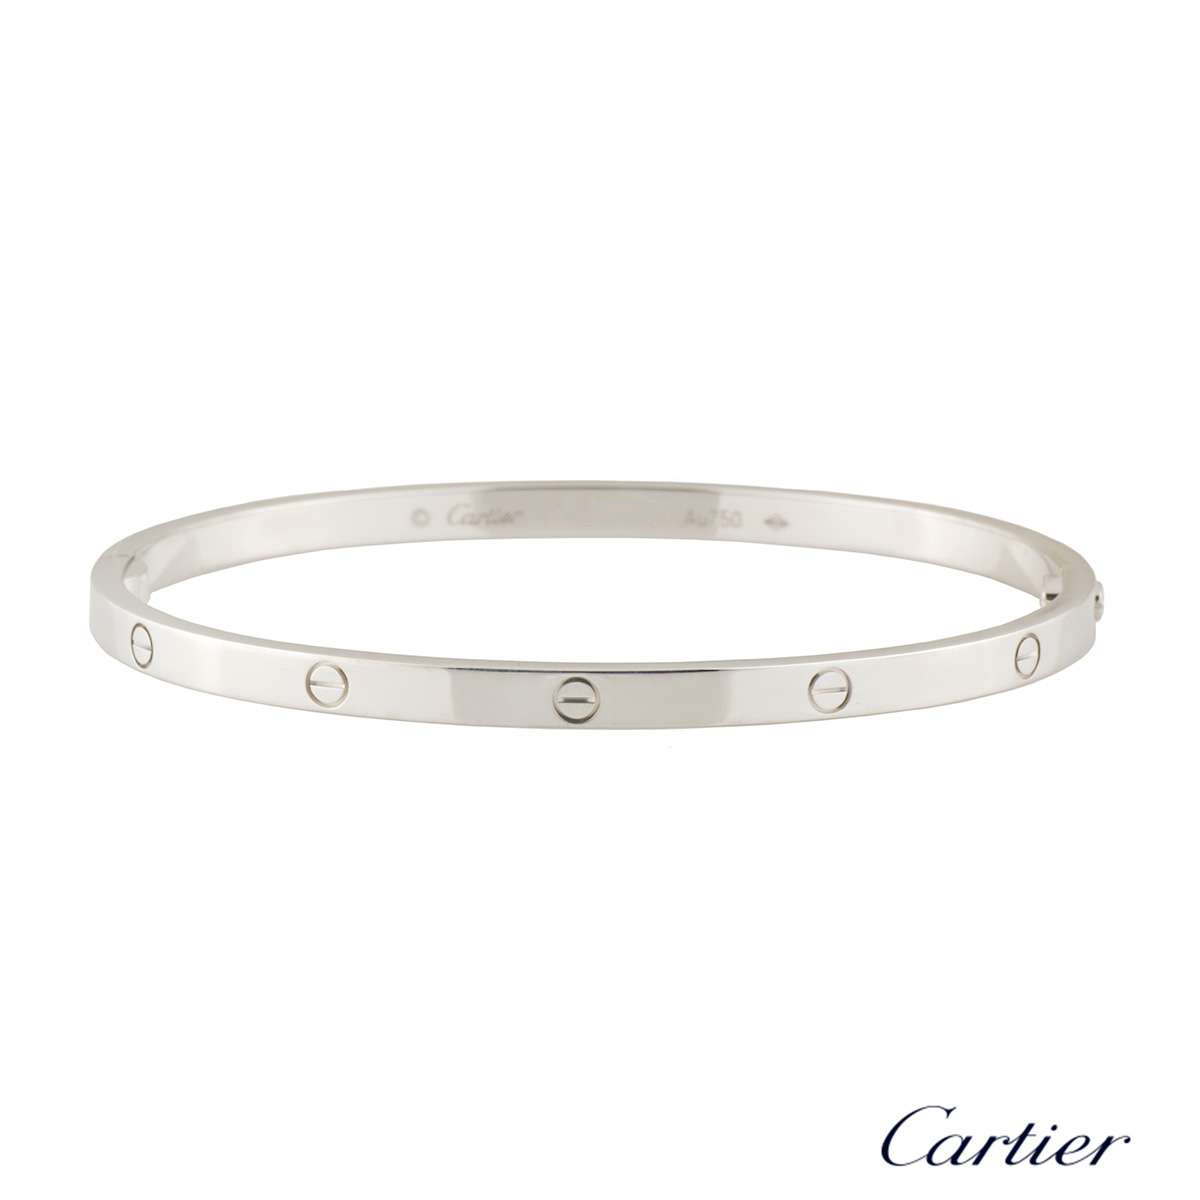 Cartier White Gold Love Bracelet SM Size 19 B6047419